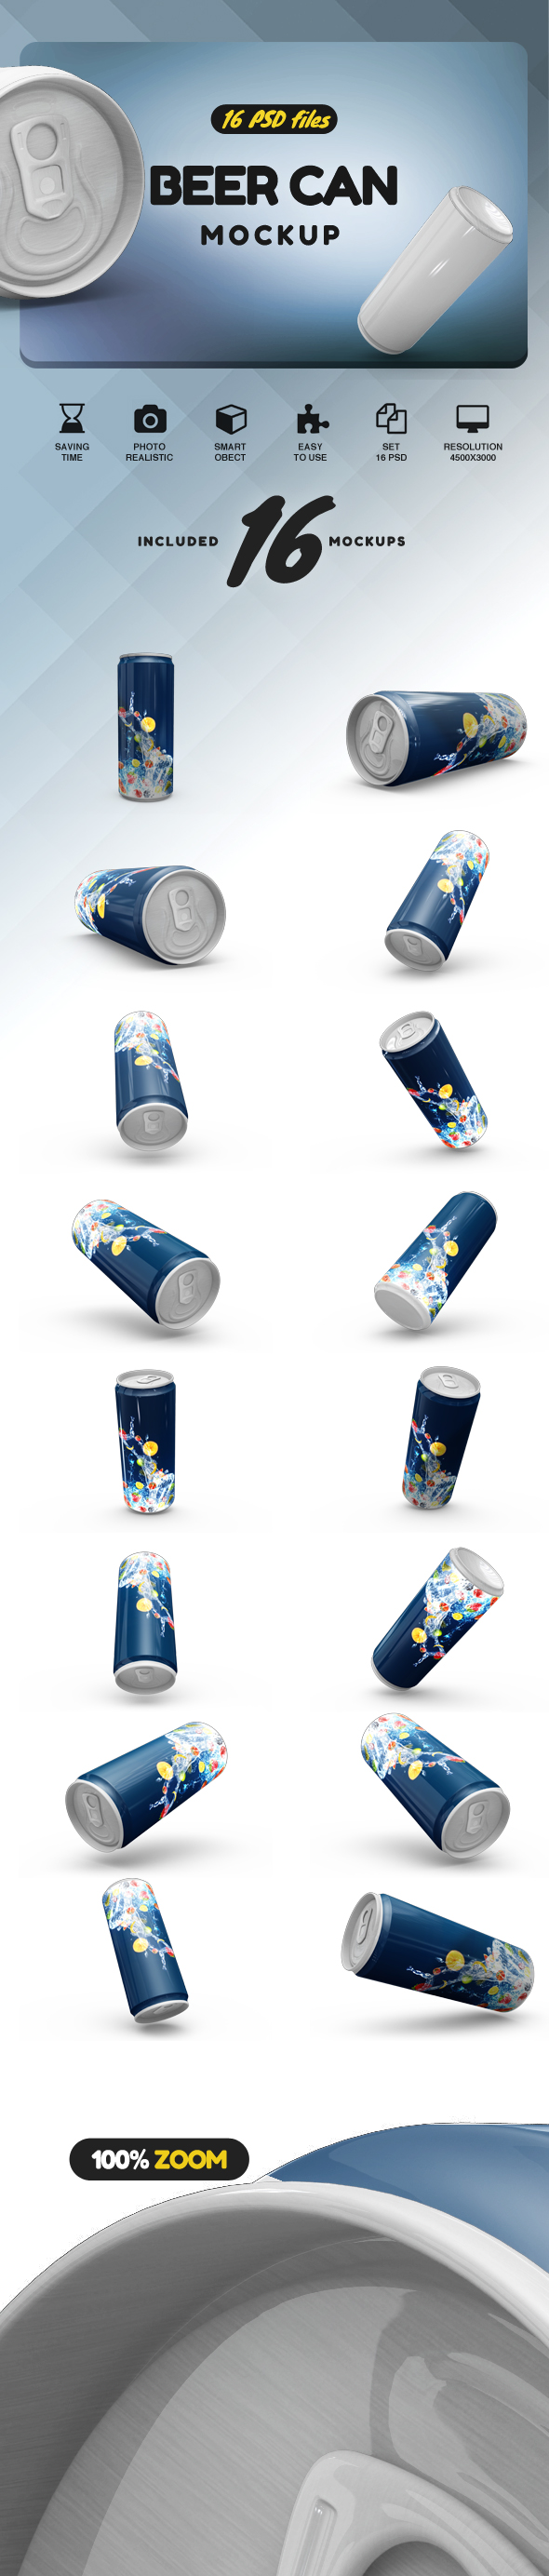 Beer Can Mockup example image 2